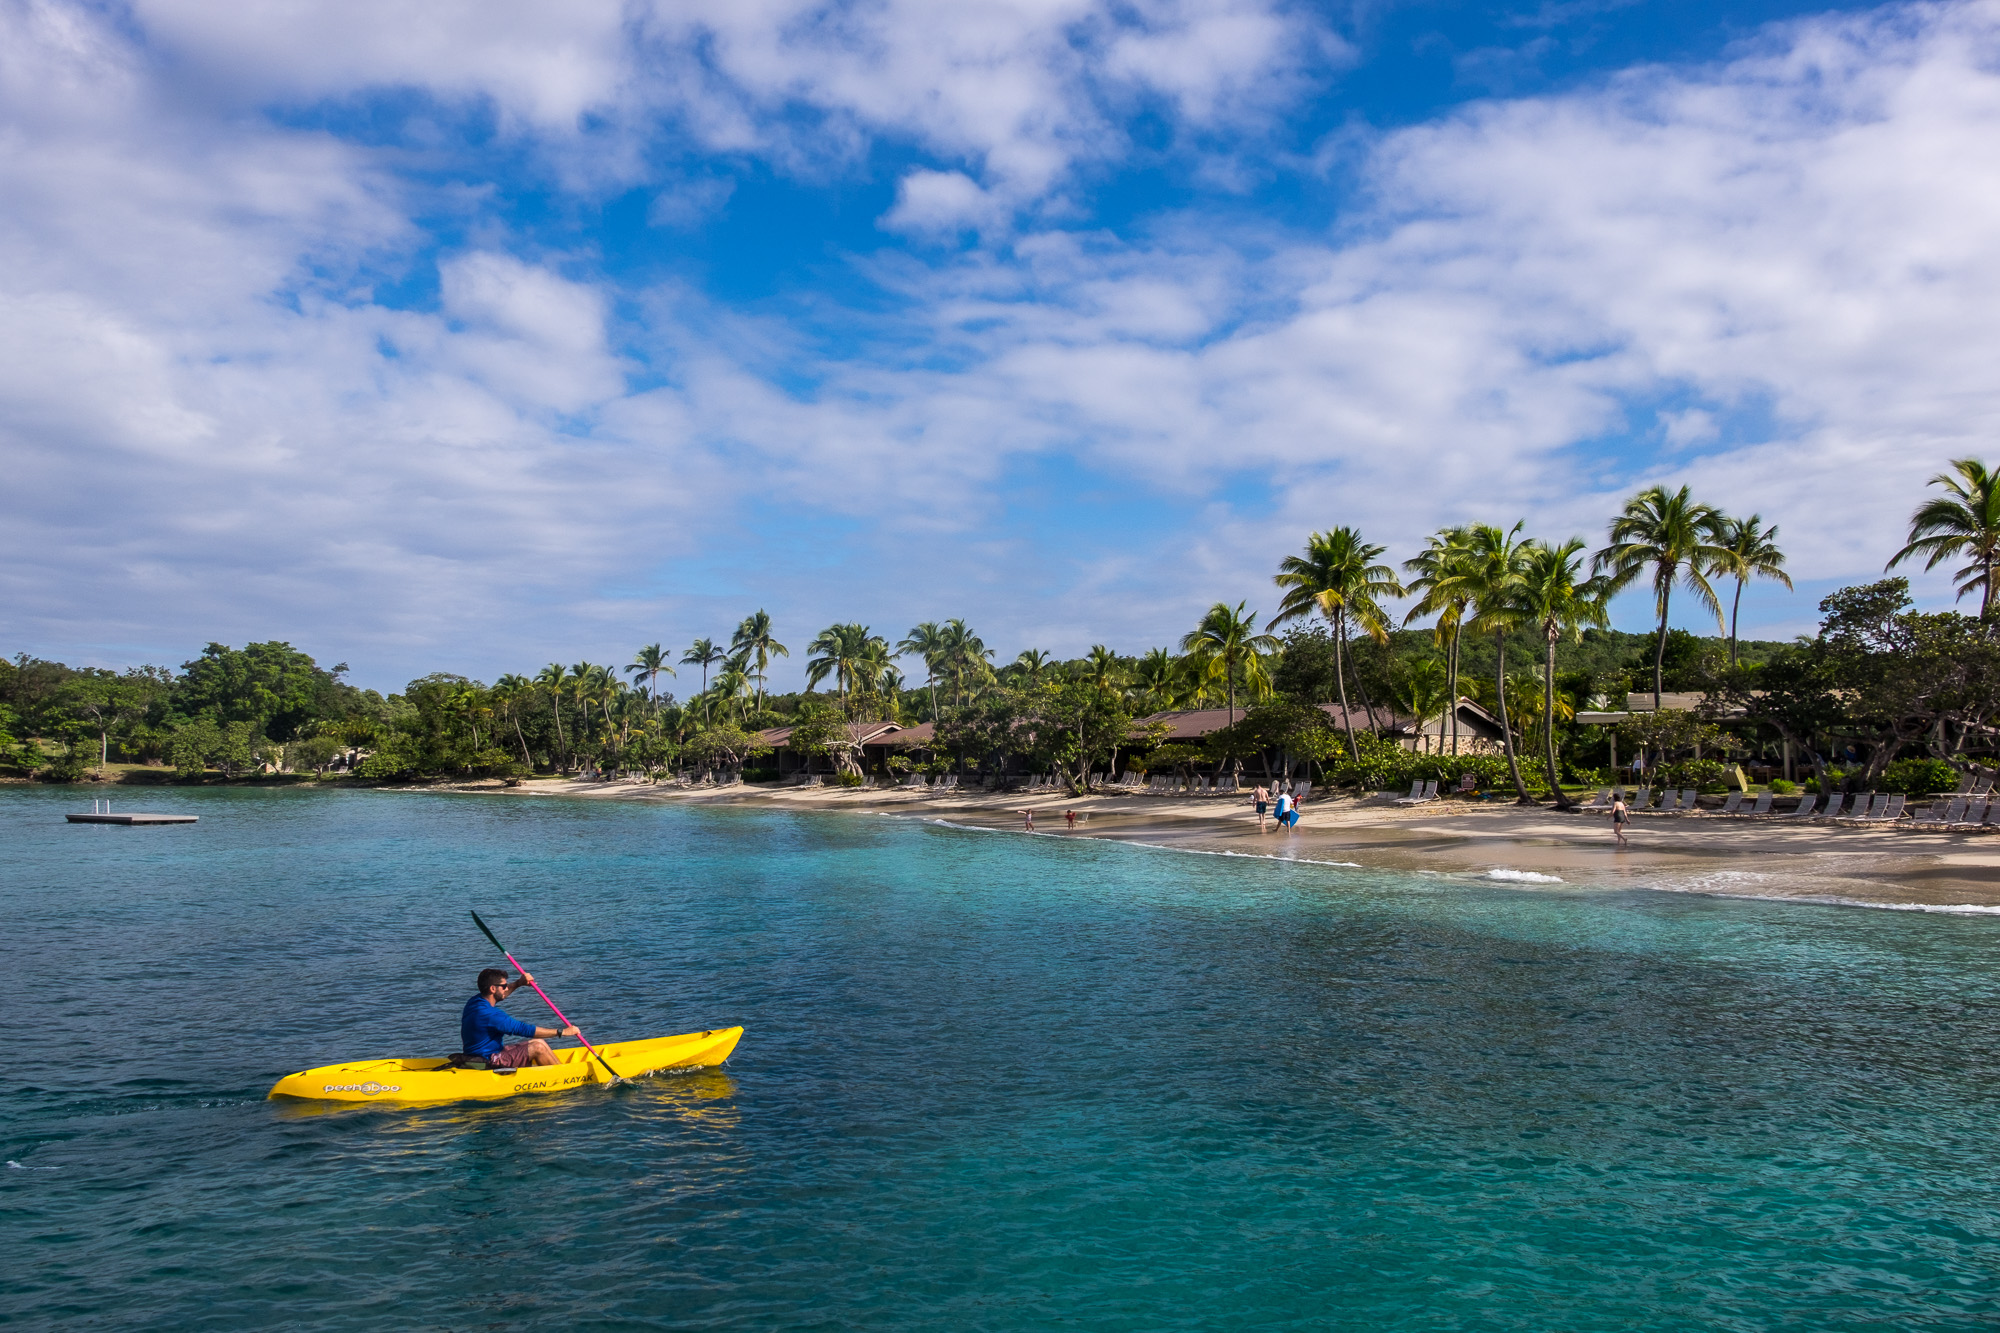 Kayaks, sailboats, and paddleboards were free to use!